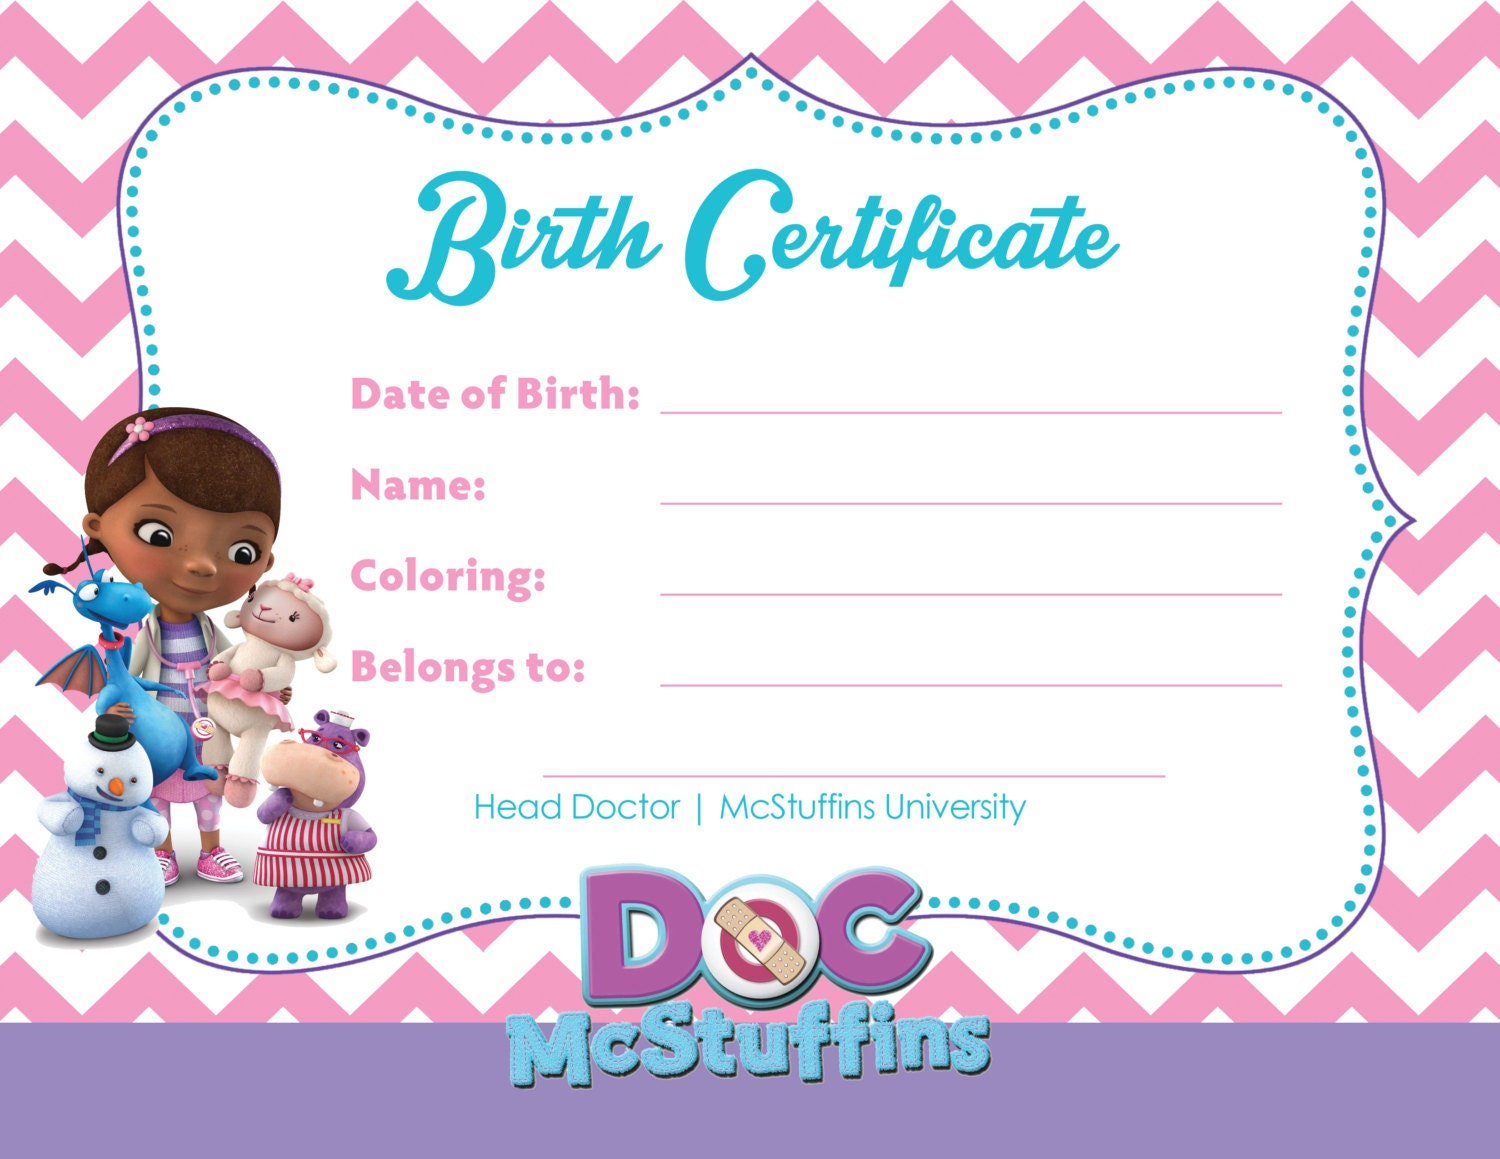 Doc mcstuffins party birth certificate for toys digital zoom yadclub Choice Image